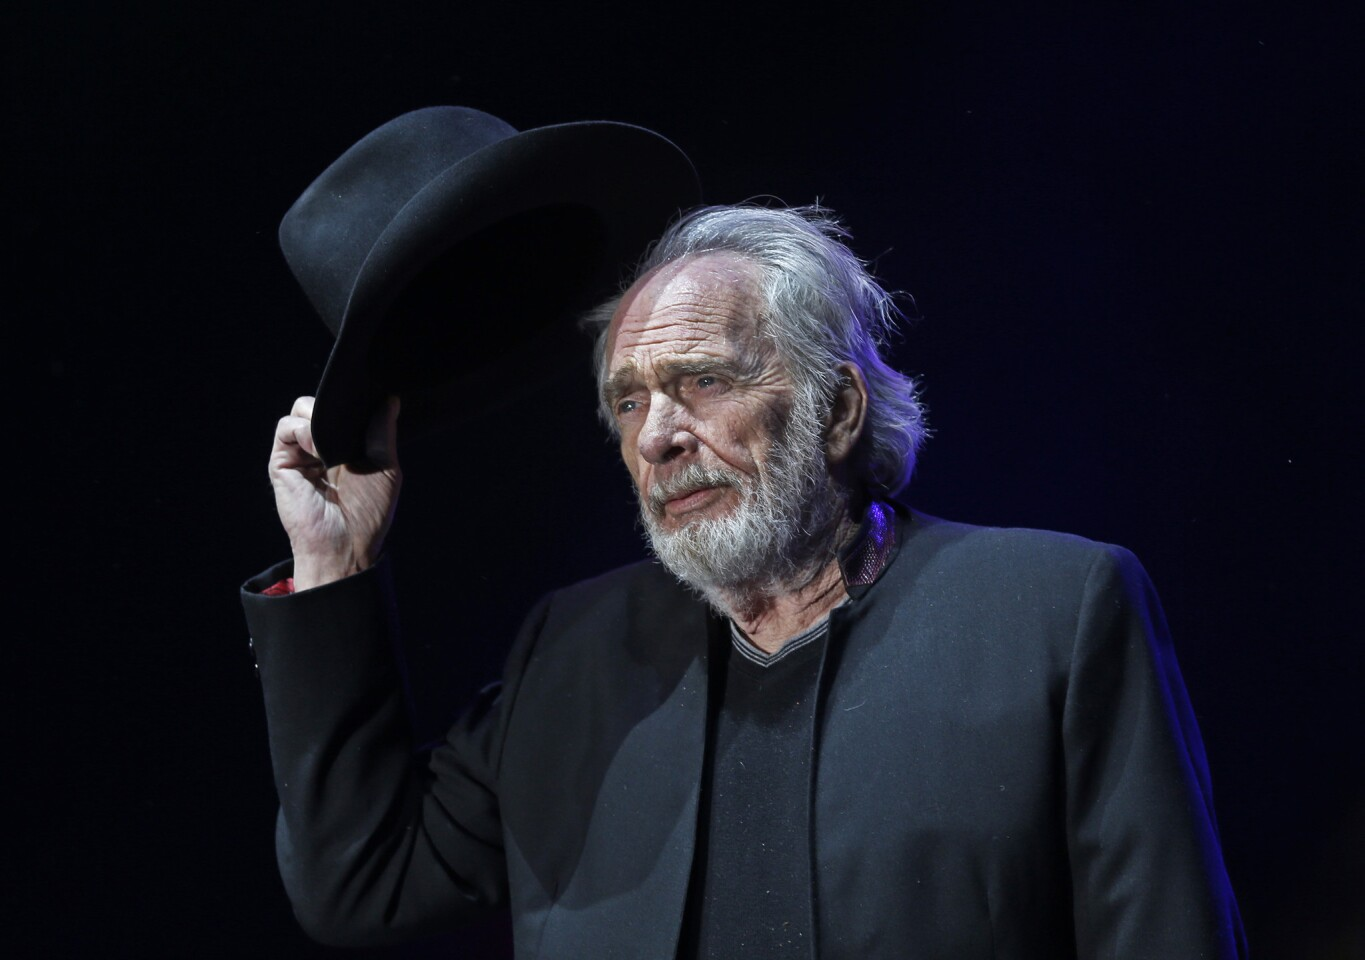 Merle Haggard tips his hat to the crowd as he performs at the Stagecoach Country Music Festival in Indio on April 24, 2015.